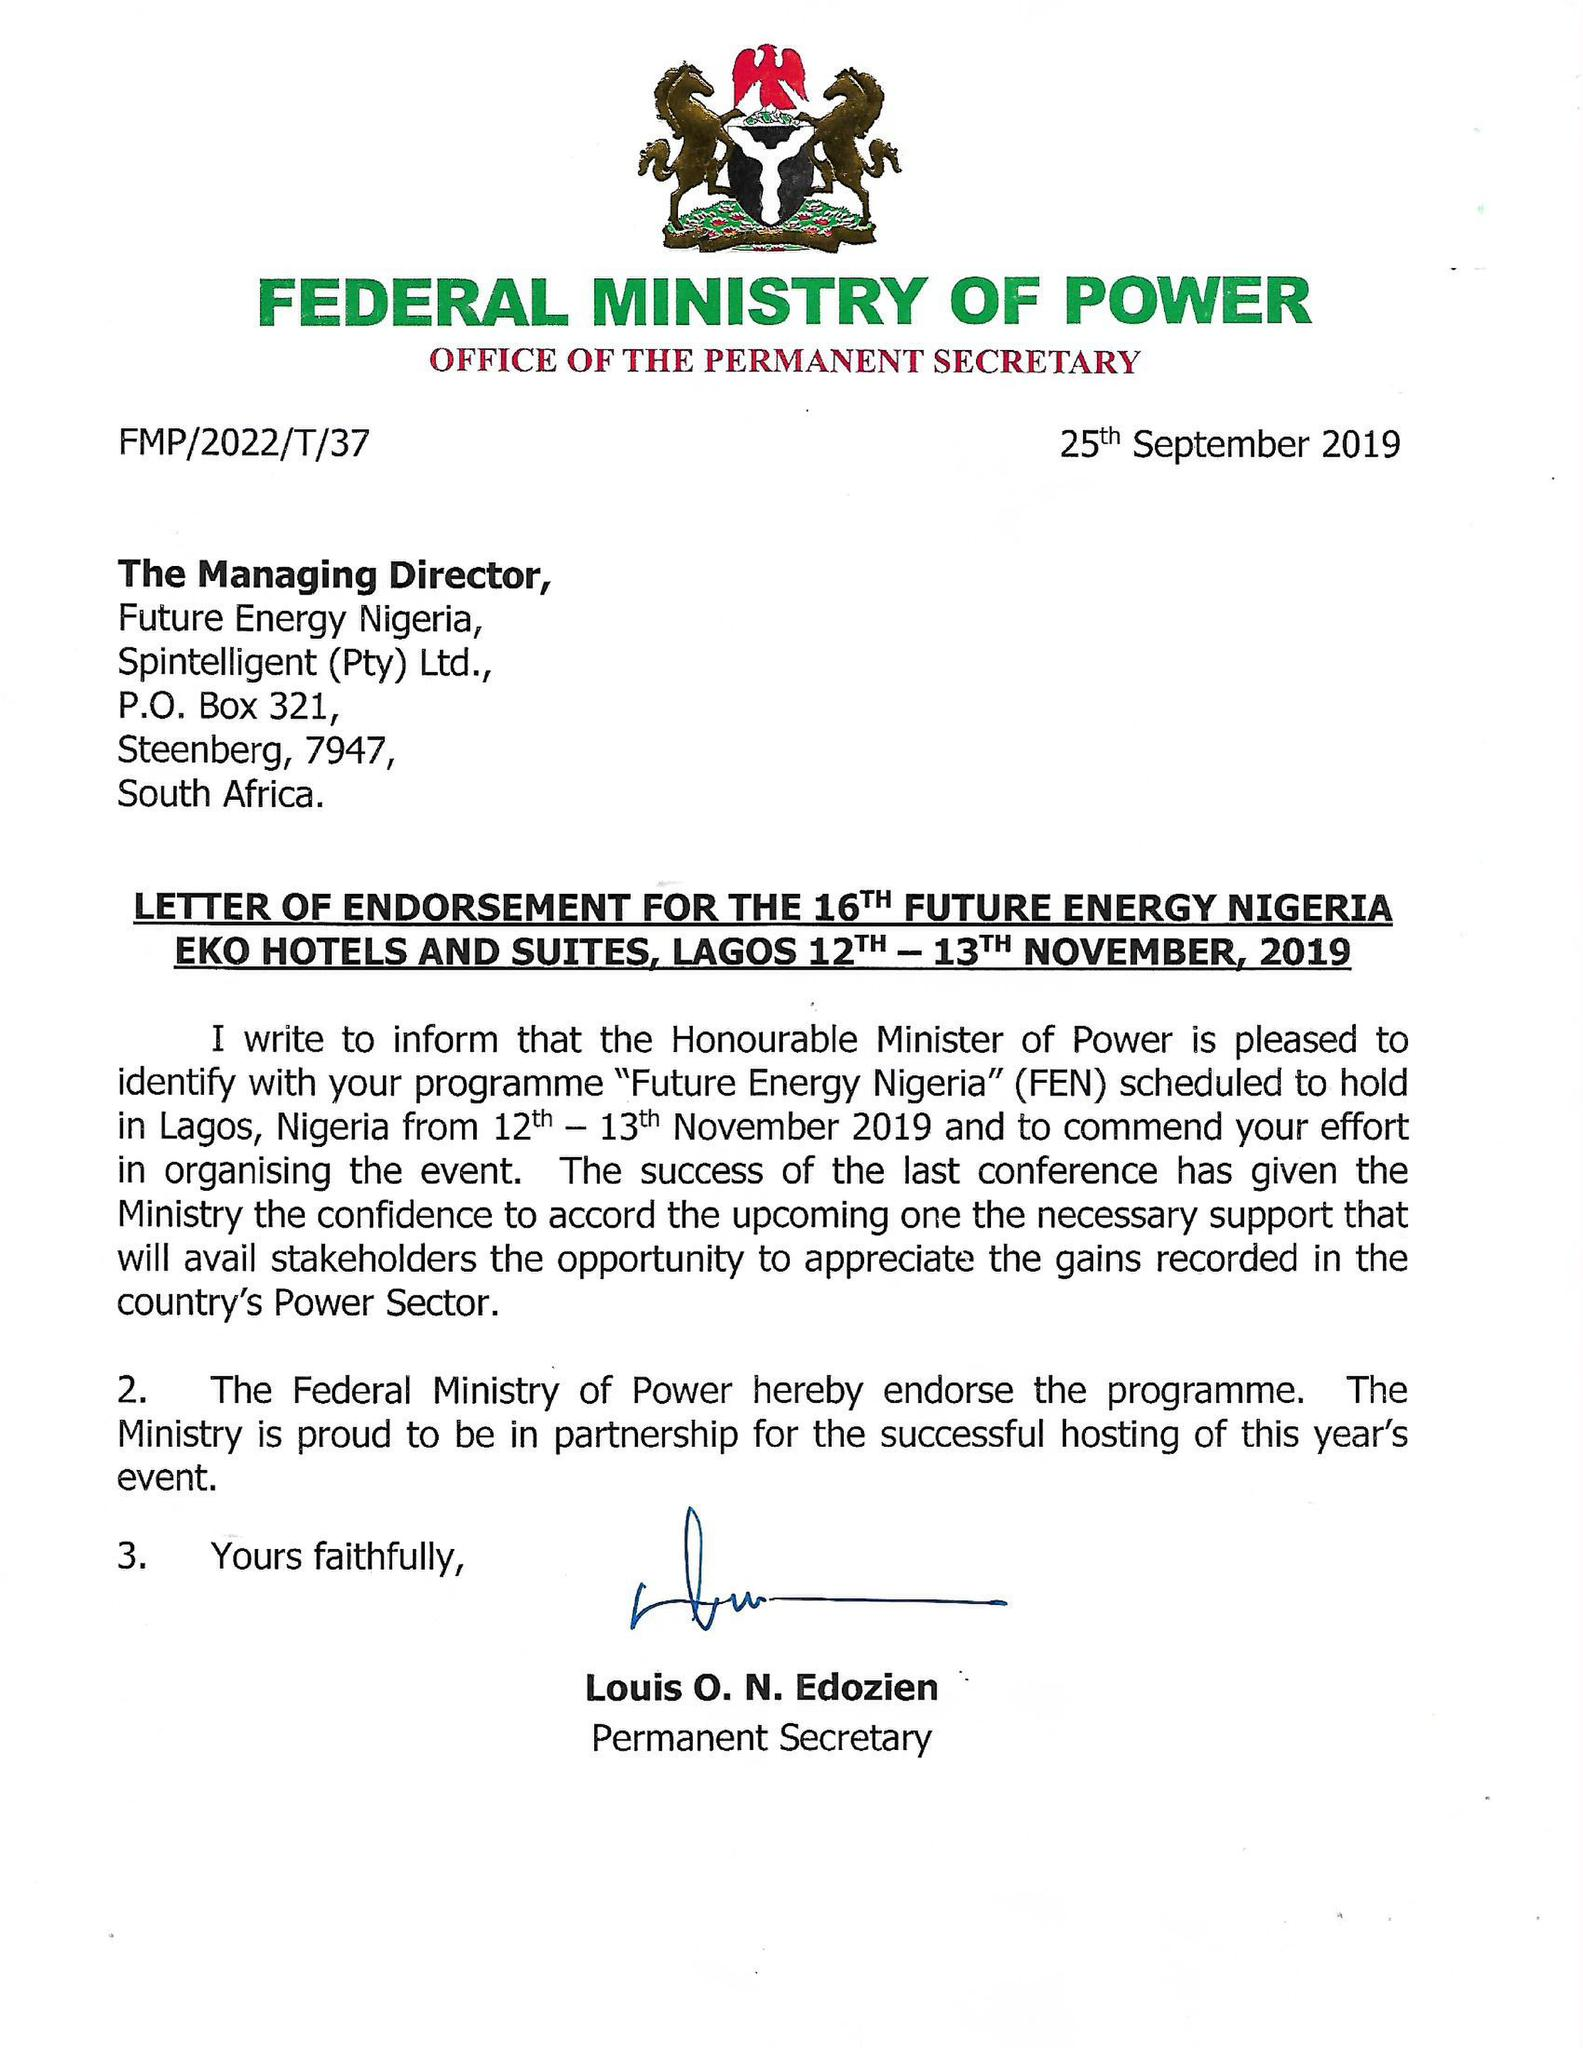 Future Energy Nigeria - Official Endorsement - Federal Ministry of Power